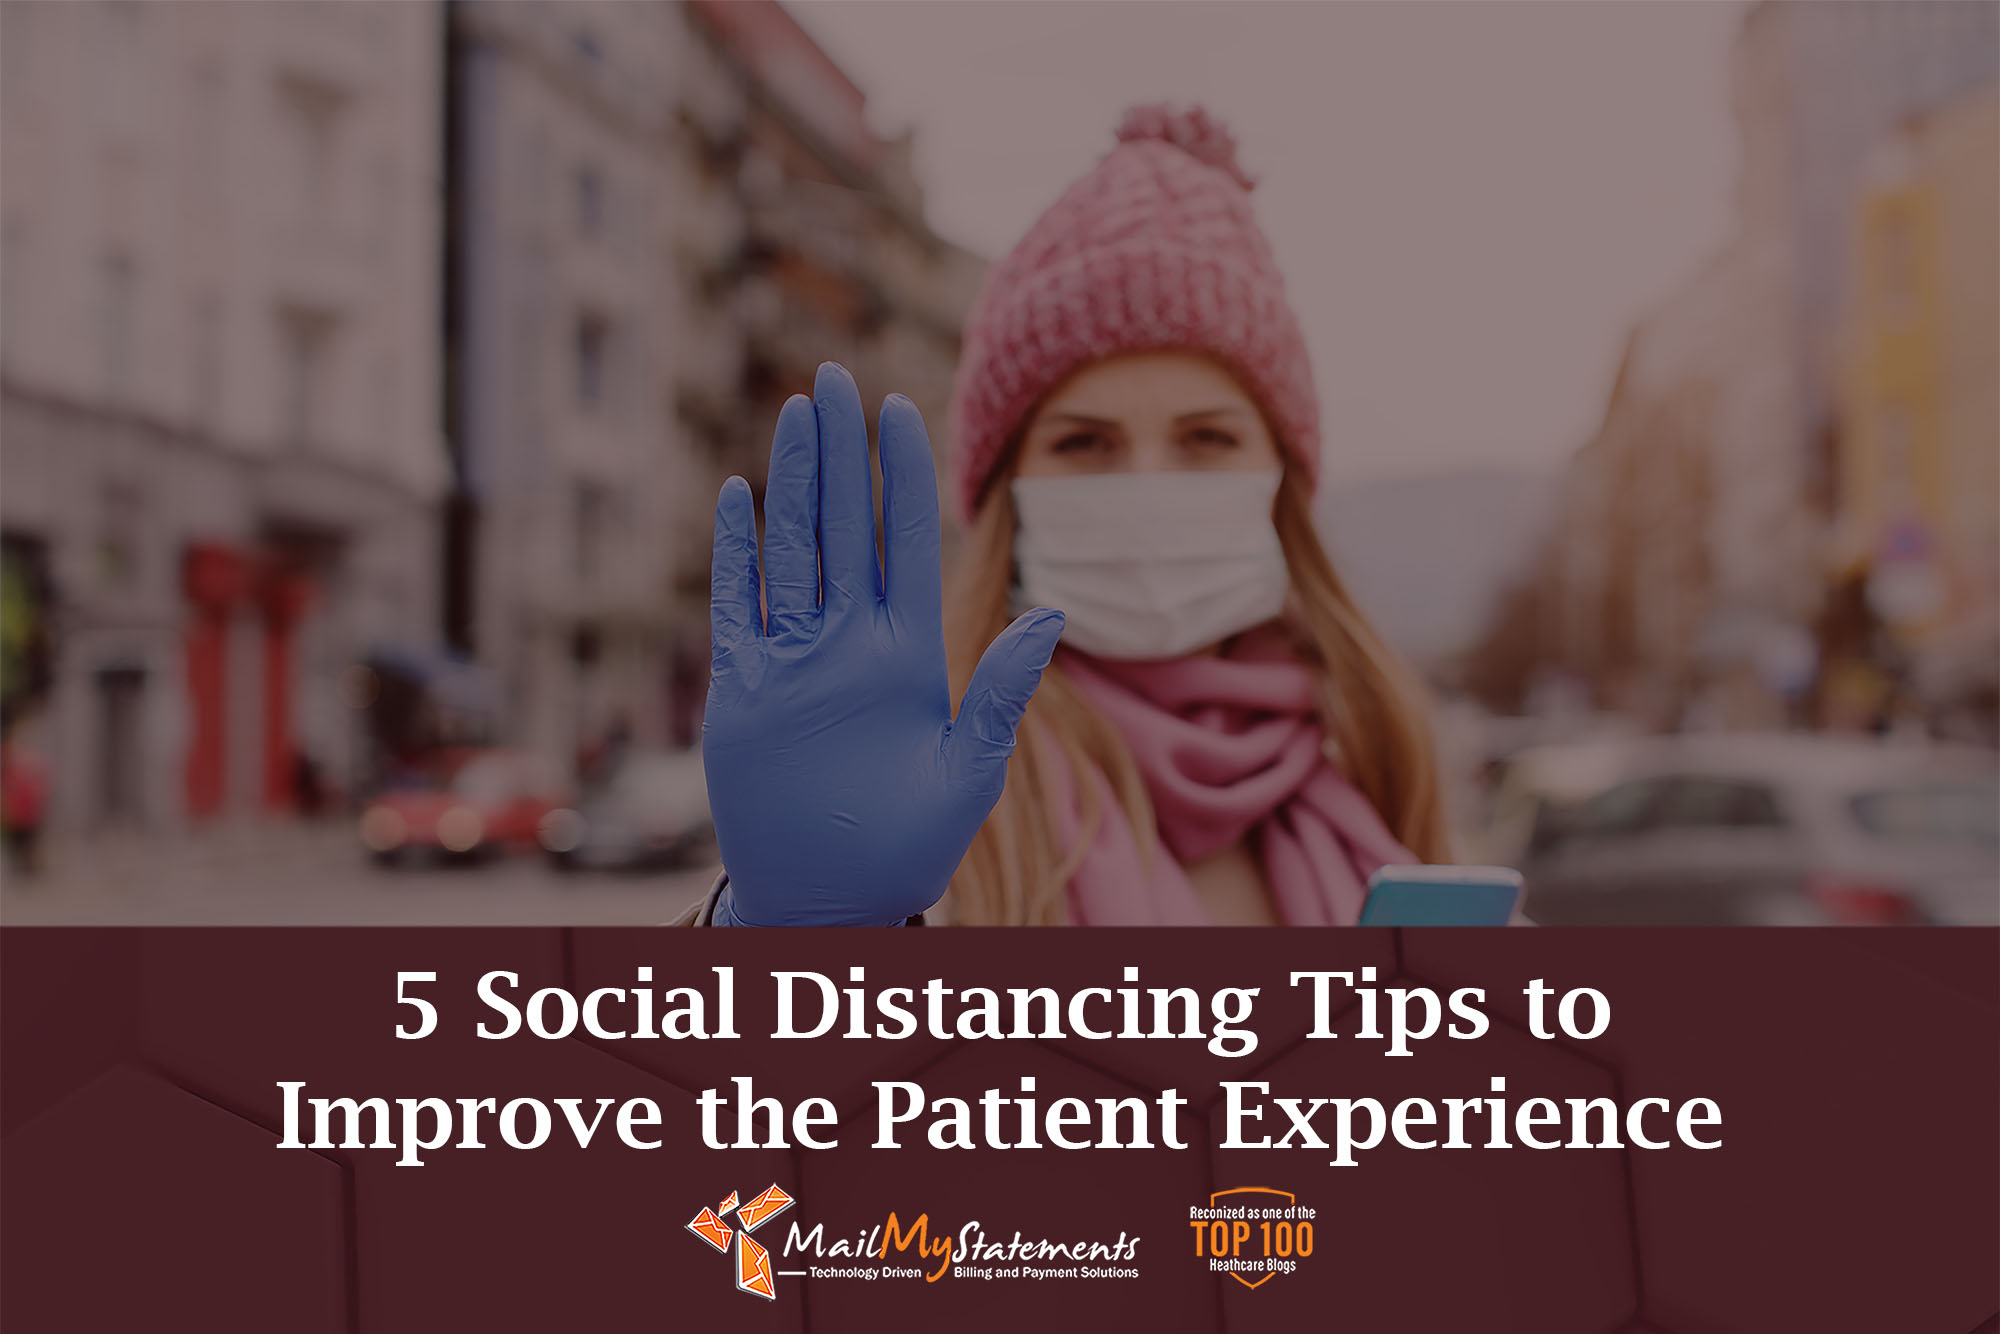 5 Social Distancing Tips to Improve the Patient Experience